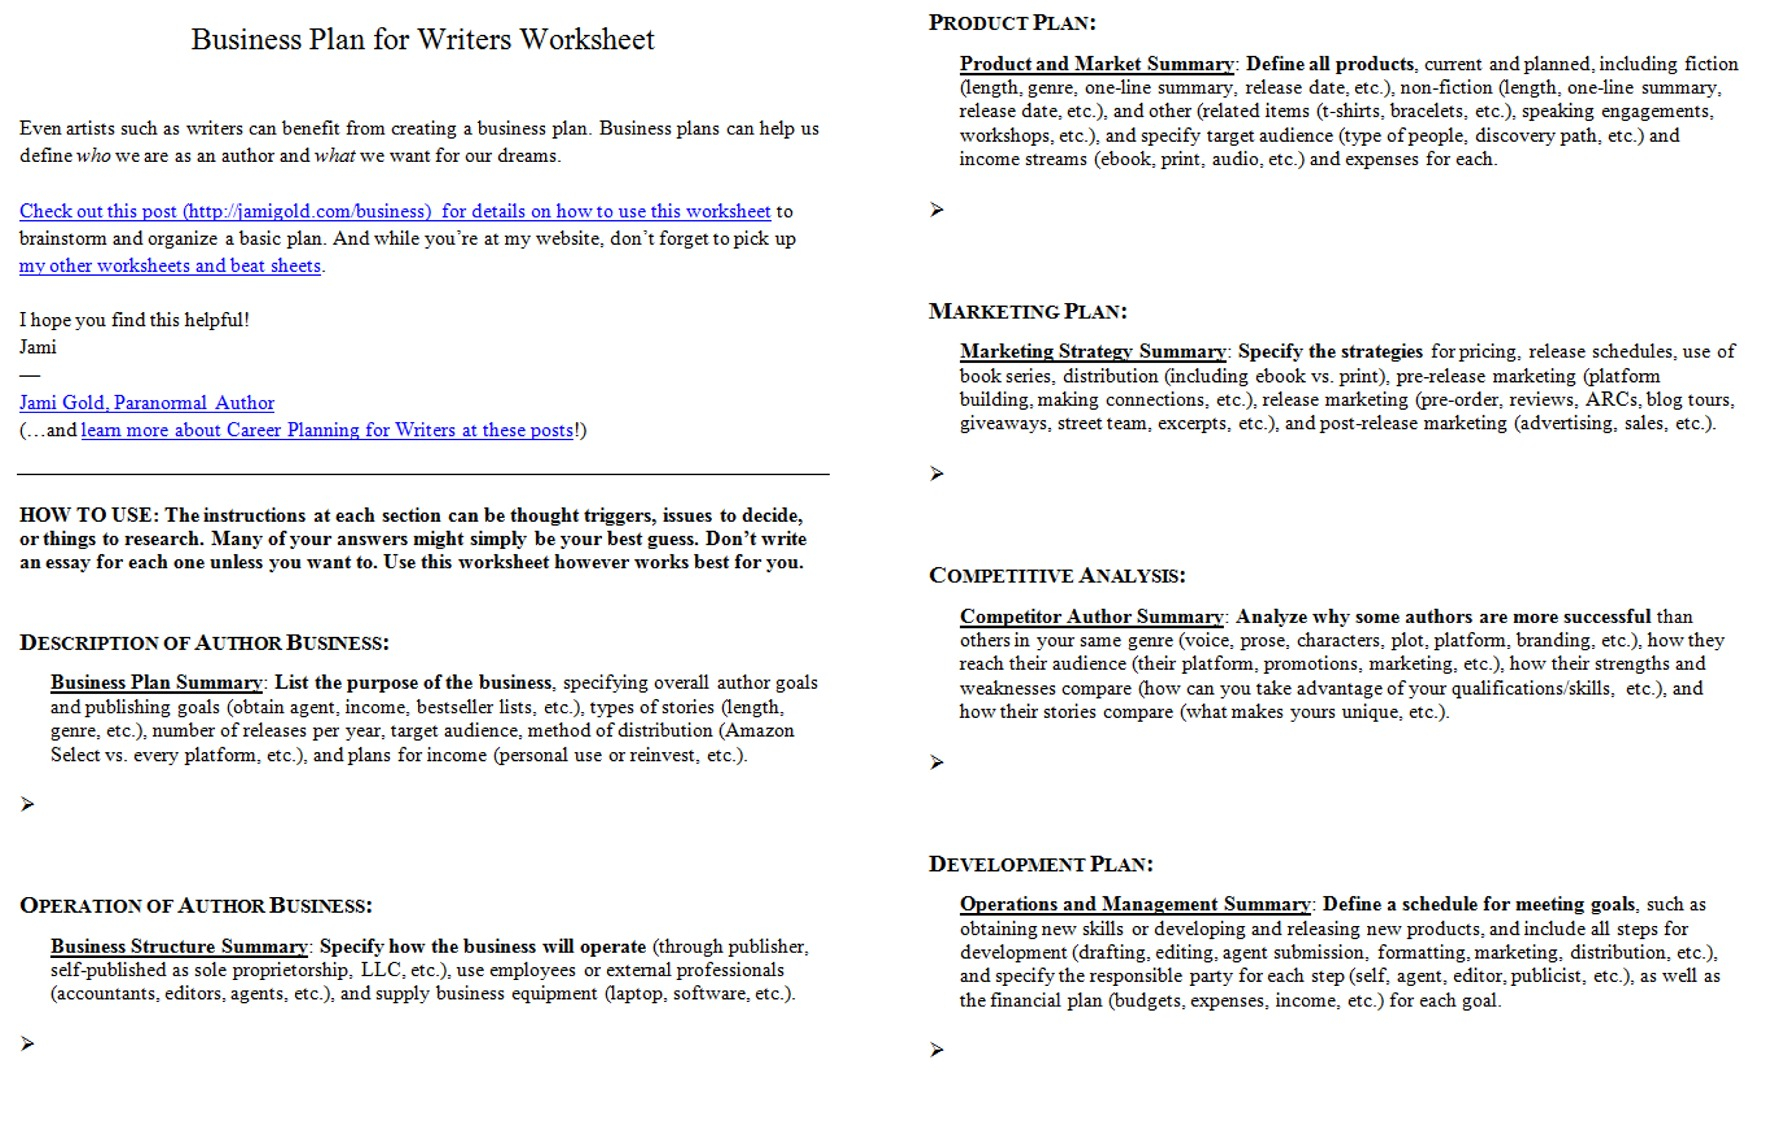 Weirdmailus  Wonderful Worksheets For Writers  Jami Gold Paranormal Author With Excellent Screen Shot Of Both Pages Of The Business Plan For Writers Worksheet With Extraordinary Related Addition And Subtraction Facts Worksheets Also Context Clues Worksheets For Th Grade In Addition Inventory Worksheets And Monster High Worksheets As Well As Activity Worksheets For Kindergarten Additionally Free Simple Budget Worksheet From Jamigoldcom With Weirdmailus  Excellent Worksheets For Writers  Jami Gold Paranormal Author With Extraordinary Screen Shot Of Both Pages Of The Business Plan For Writers Worksheet And Wonderful Related Addition And Subtraction Facts Worksheets Also Context Clues Worksheets For Th Grade In Addition Inventory Worksheets From Jamigoldcom